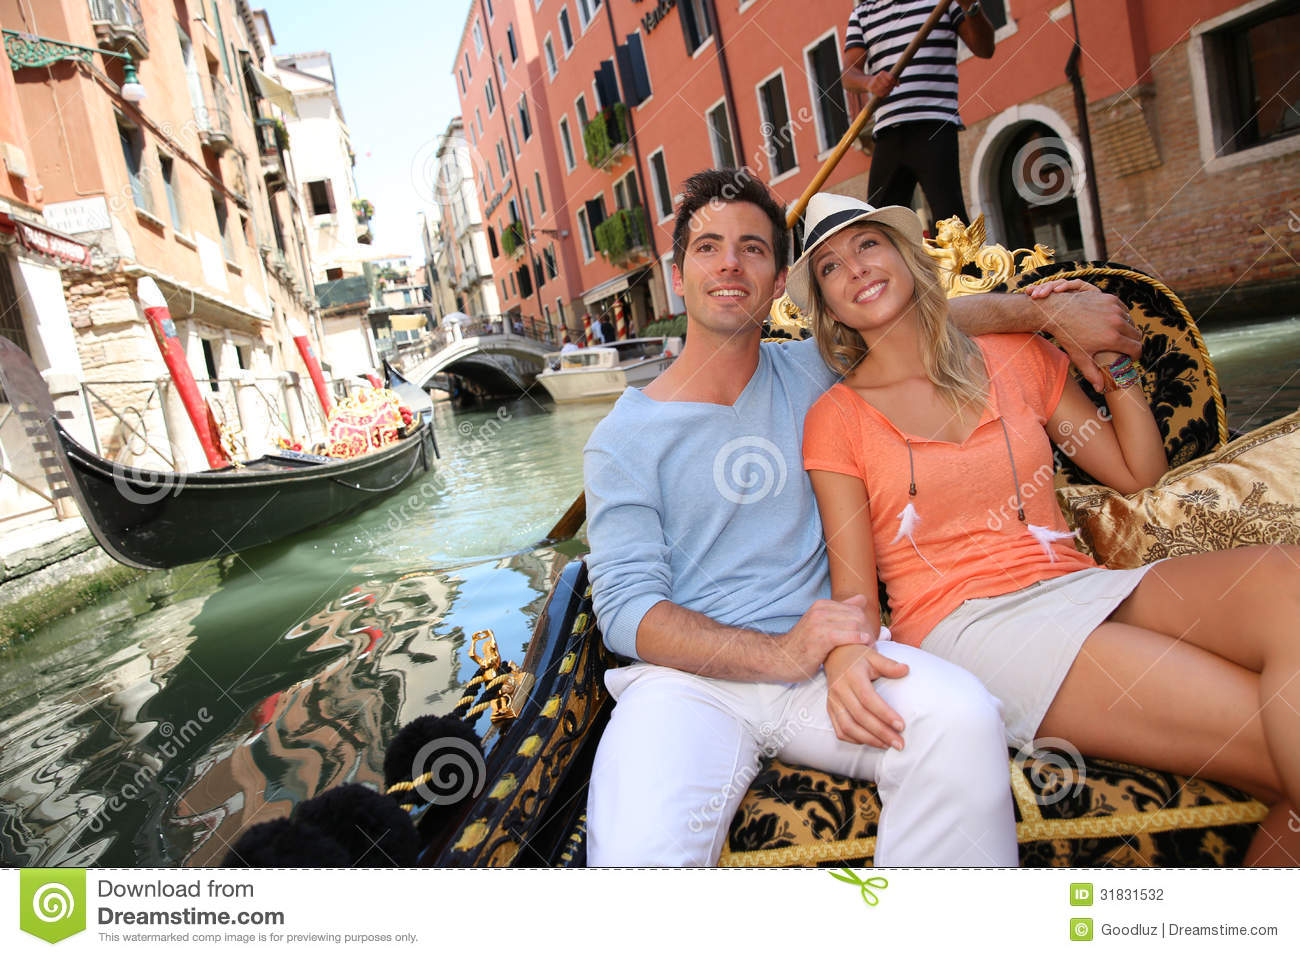 Gondola ride in Venice stock photo. Image of couple, tourists - 31831532